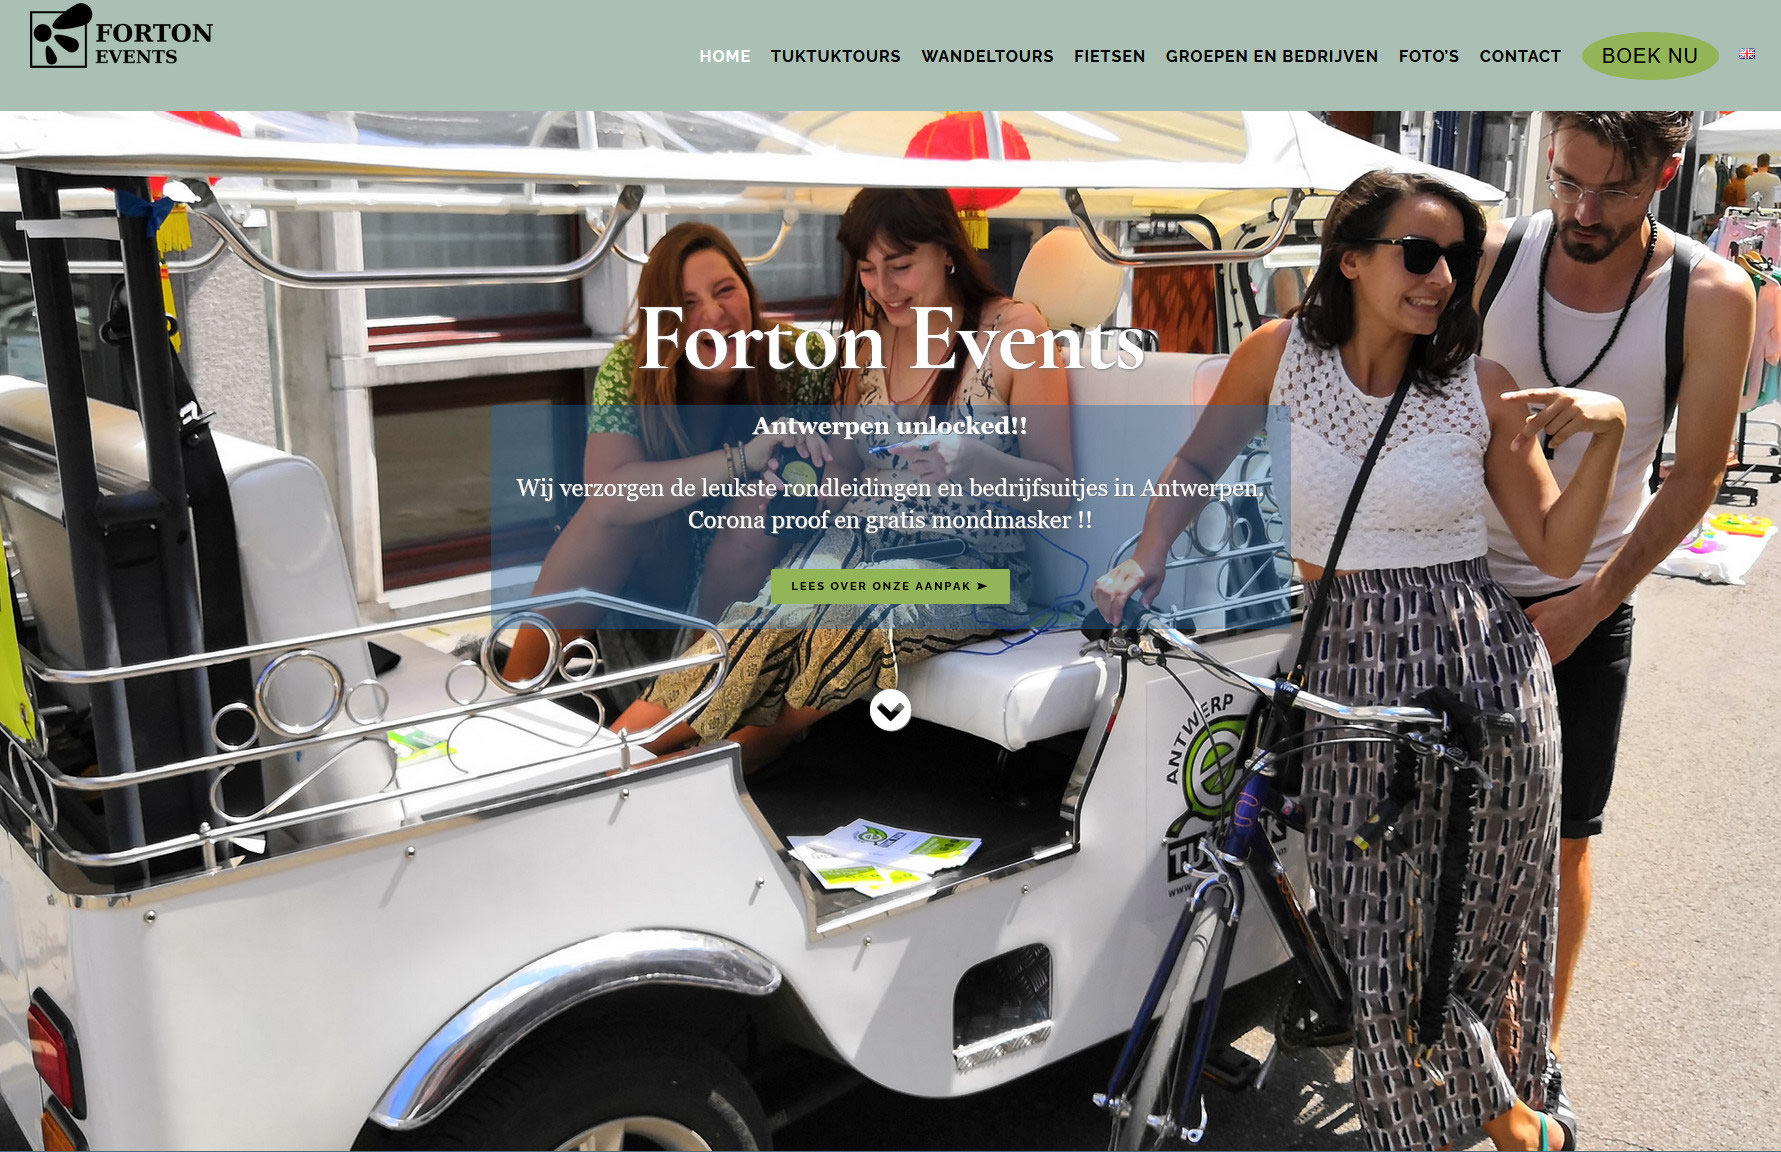 Forton Events